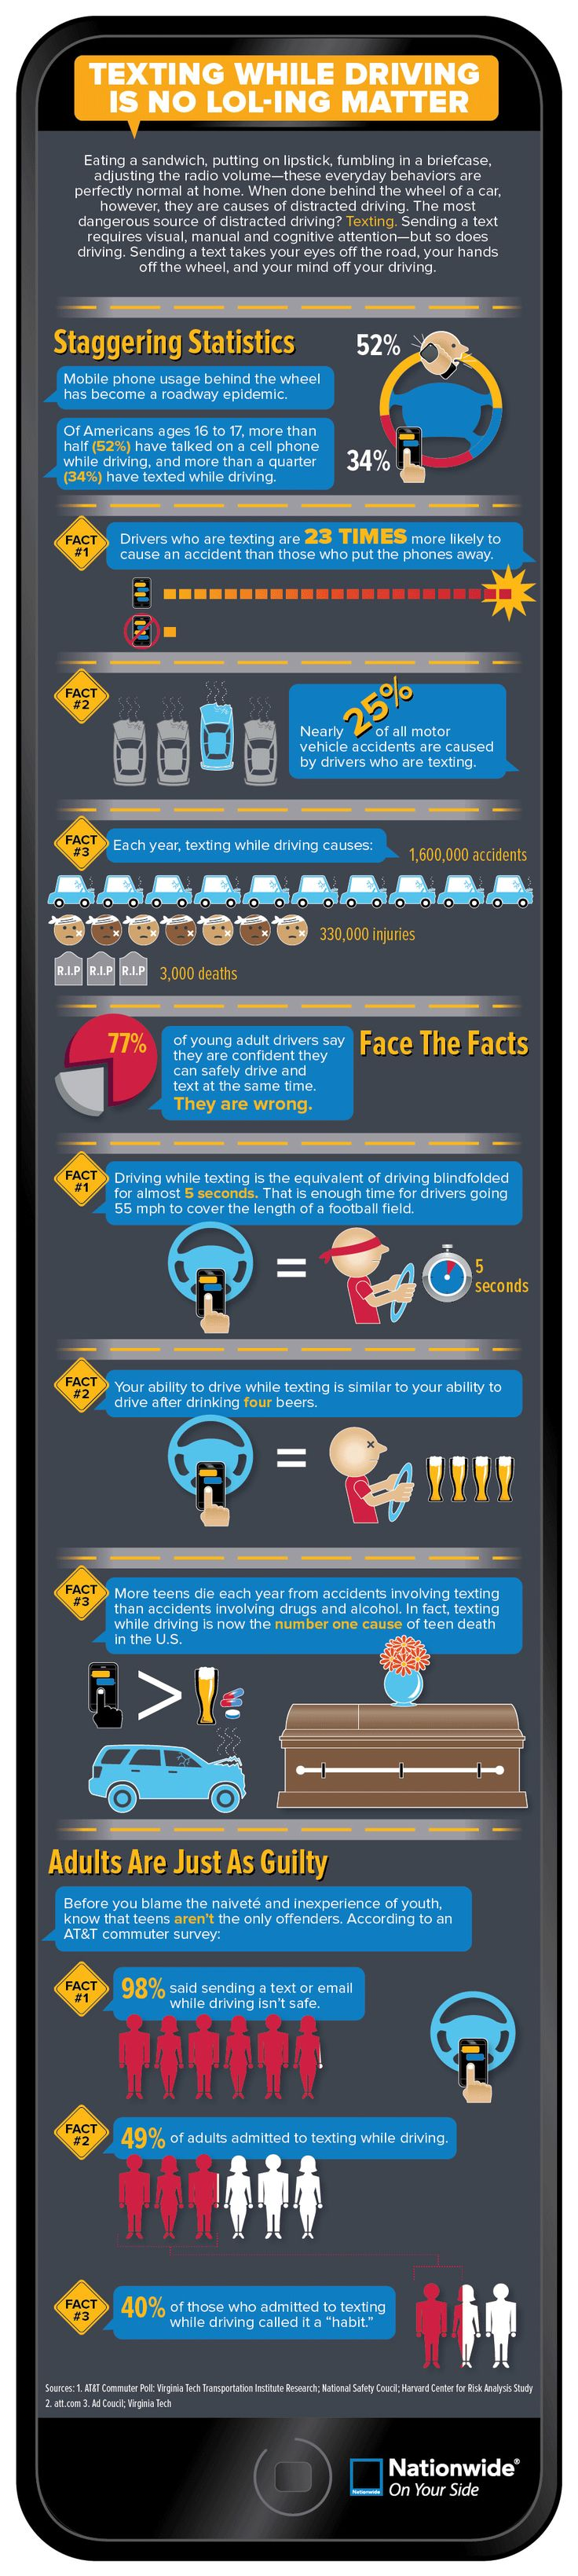 Texting While Driving Is No LOL-ing Matter | Nationwide Insurance